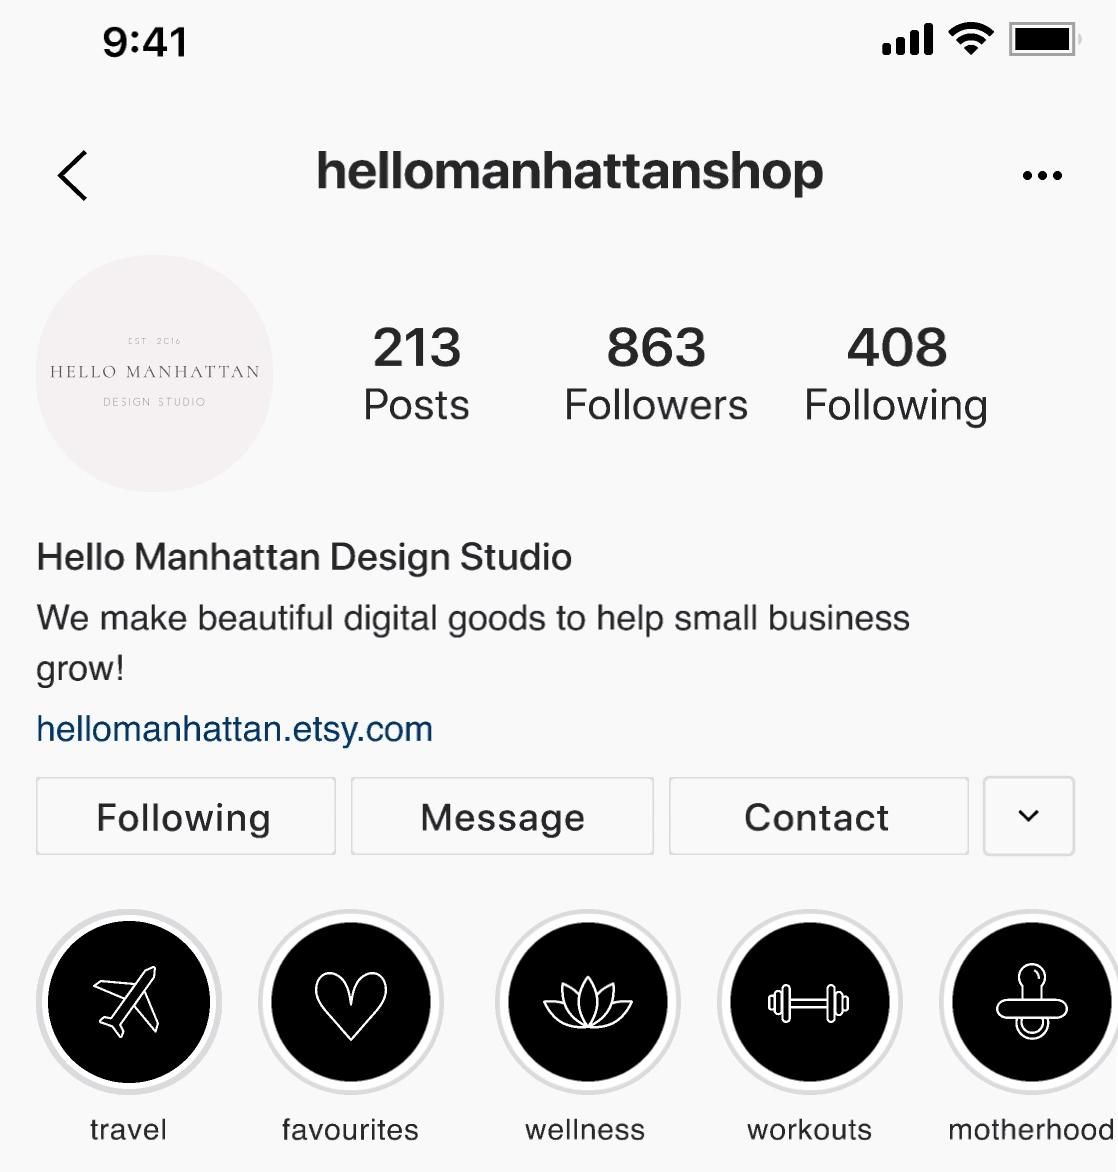 200 Instagram Story Highlight Icons Black And White Instagram Highlight Covers Lifestyle Instagram Highlight Icons Video Video Black And White Instagram Instagram Highlight Icons Instagram